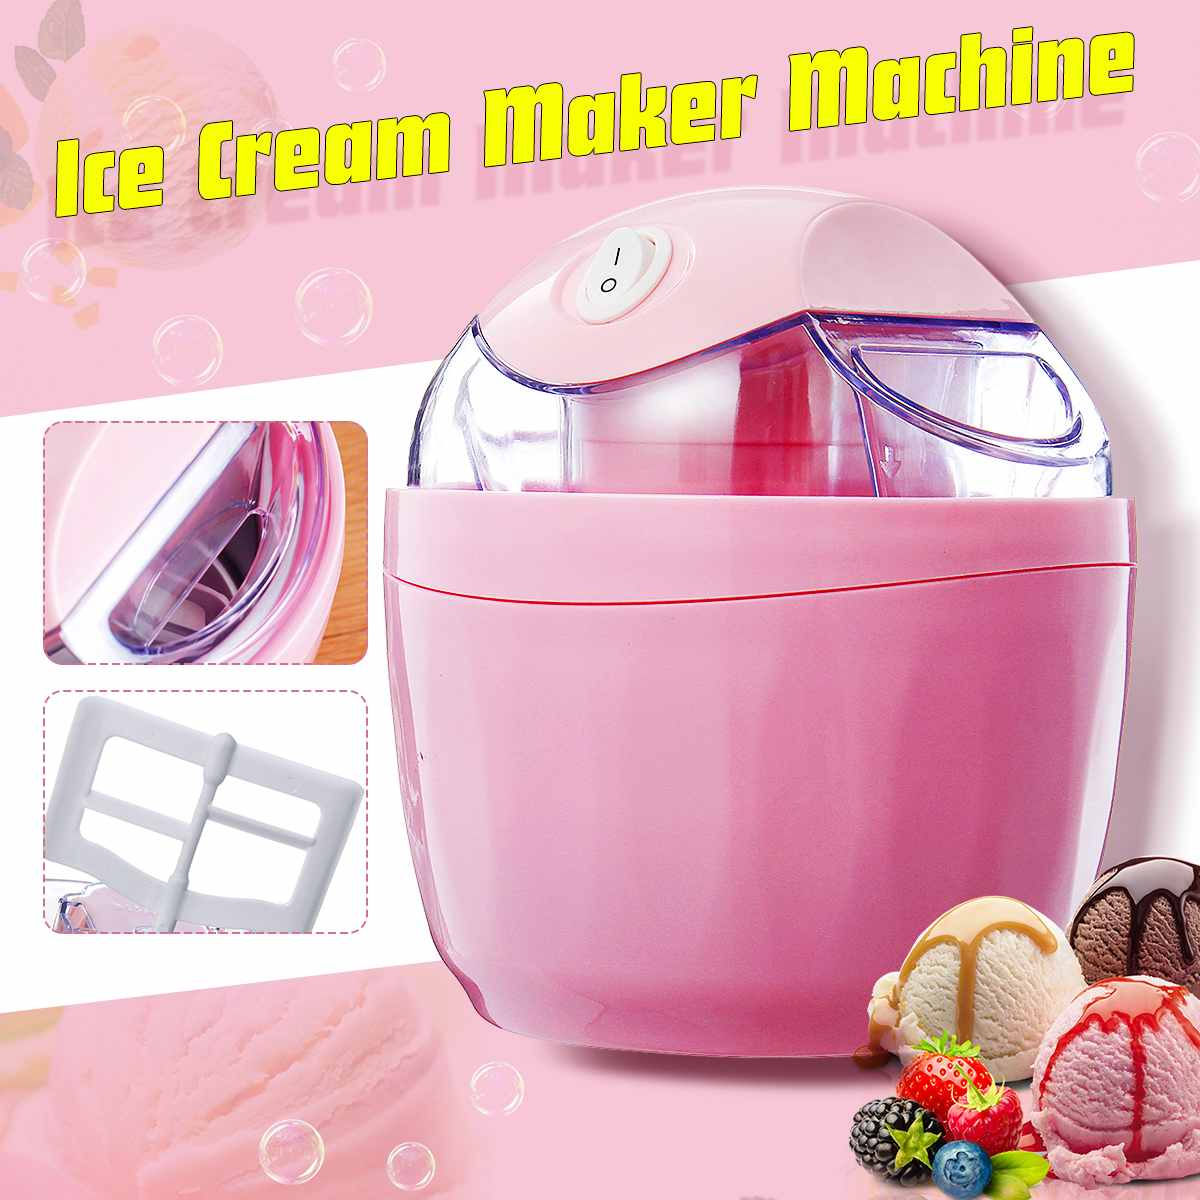 20V Household Ice Cream Maker Ice Cream Machine Portable Ice Maker Available Easy Operation High Quality